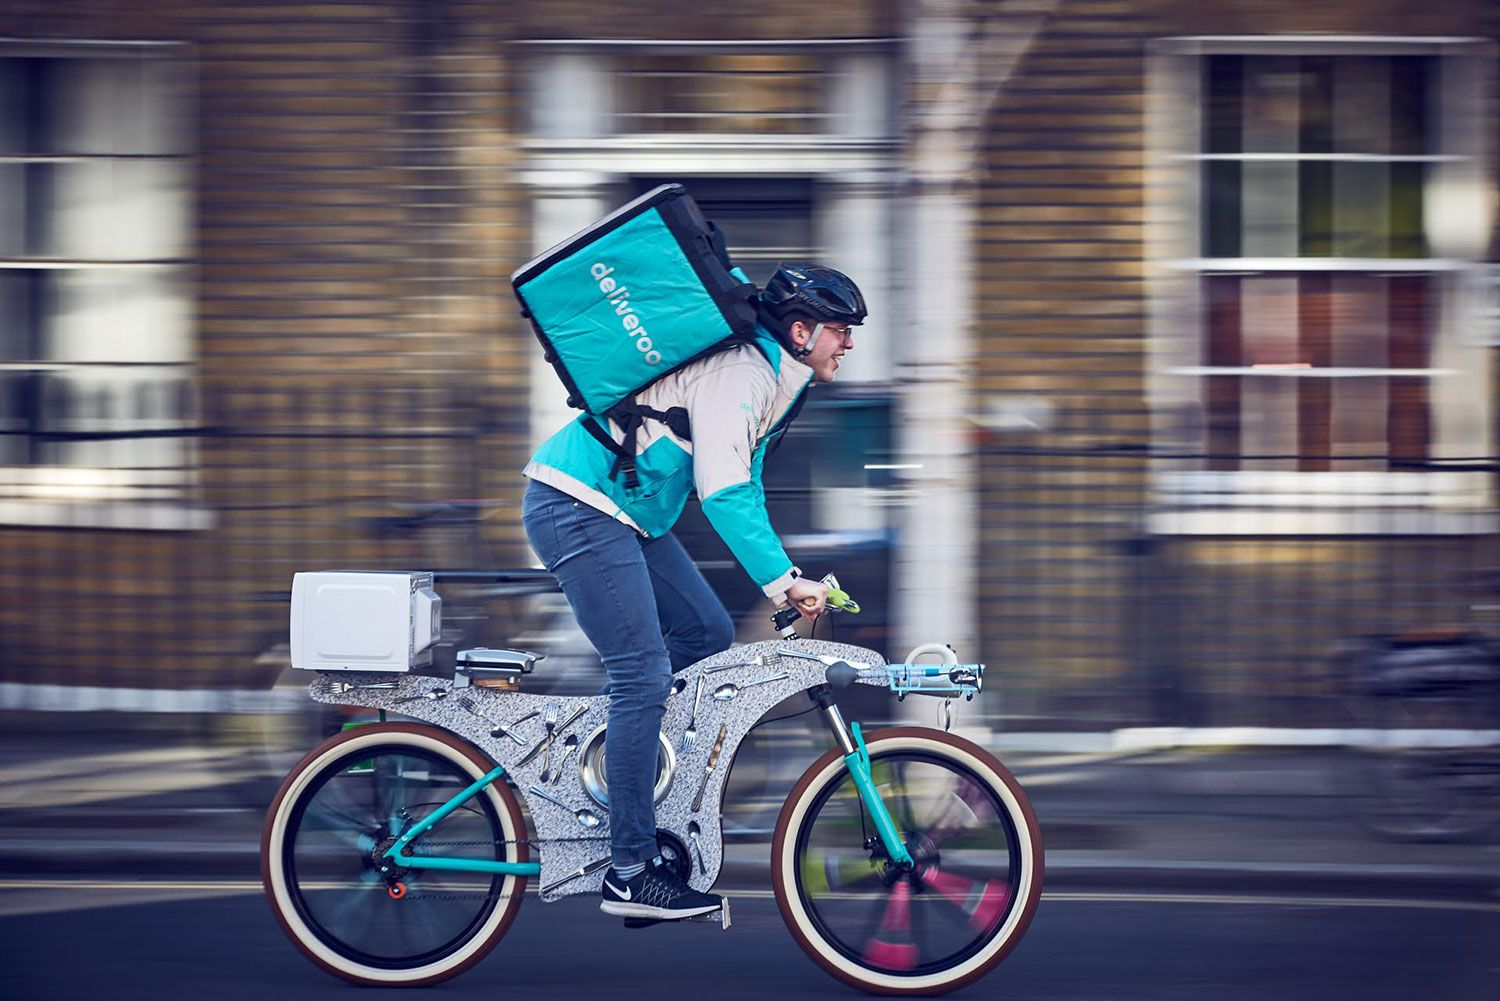 Street Kitchen This Upcycled Bike Has 34 Utensils Upcycled